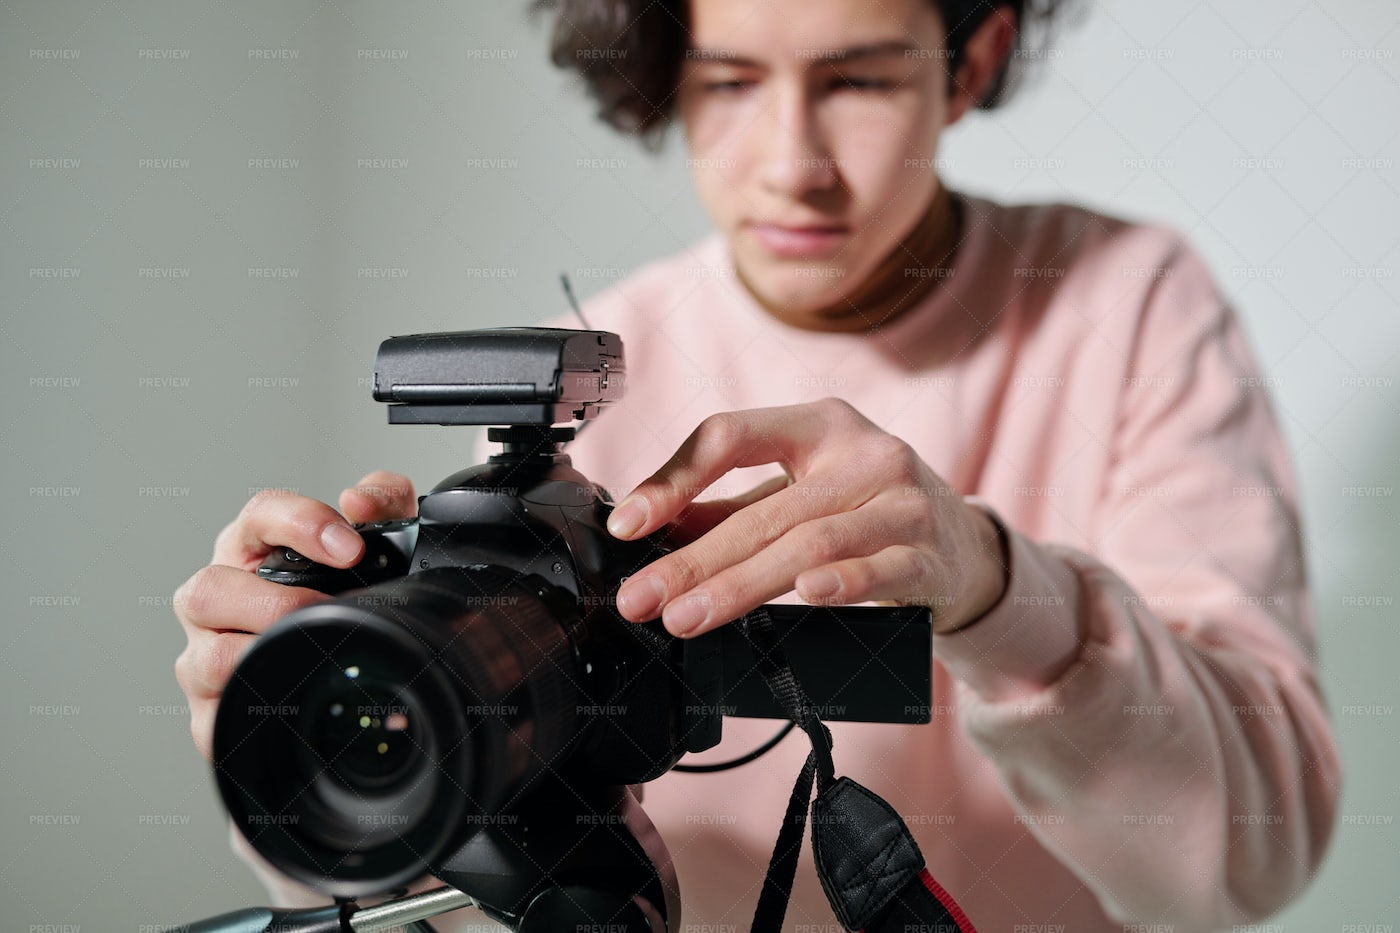 Hands Of Young Cameraman In Powdery...: Stock Photos